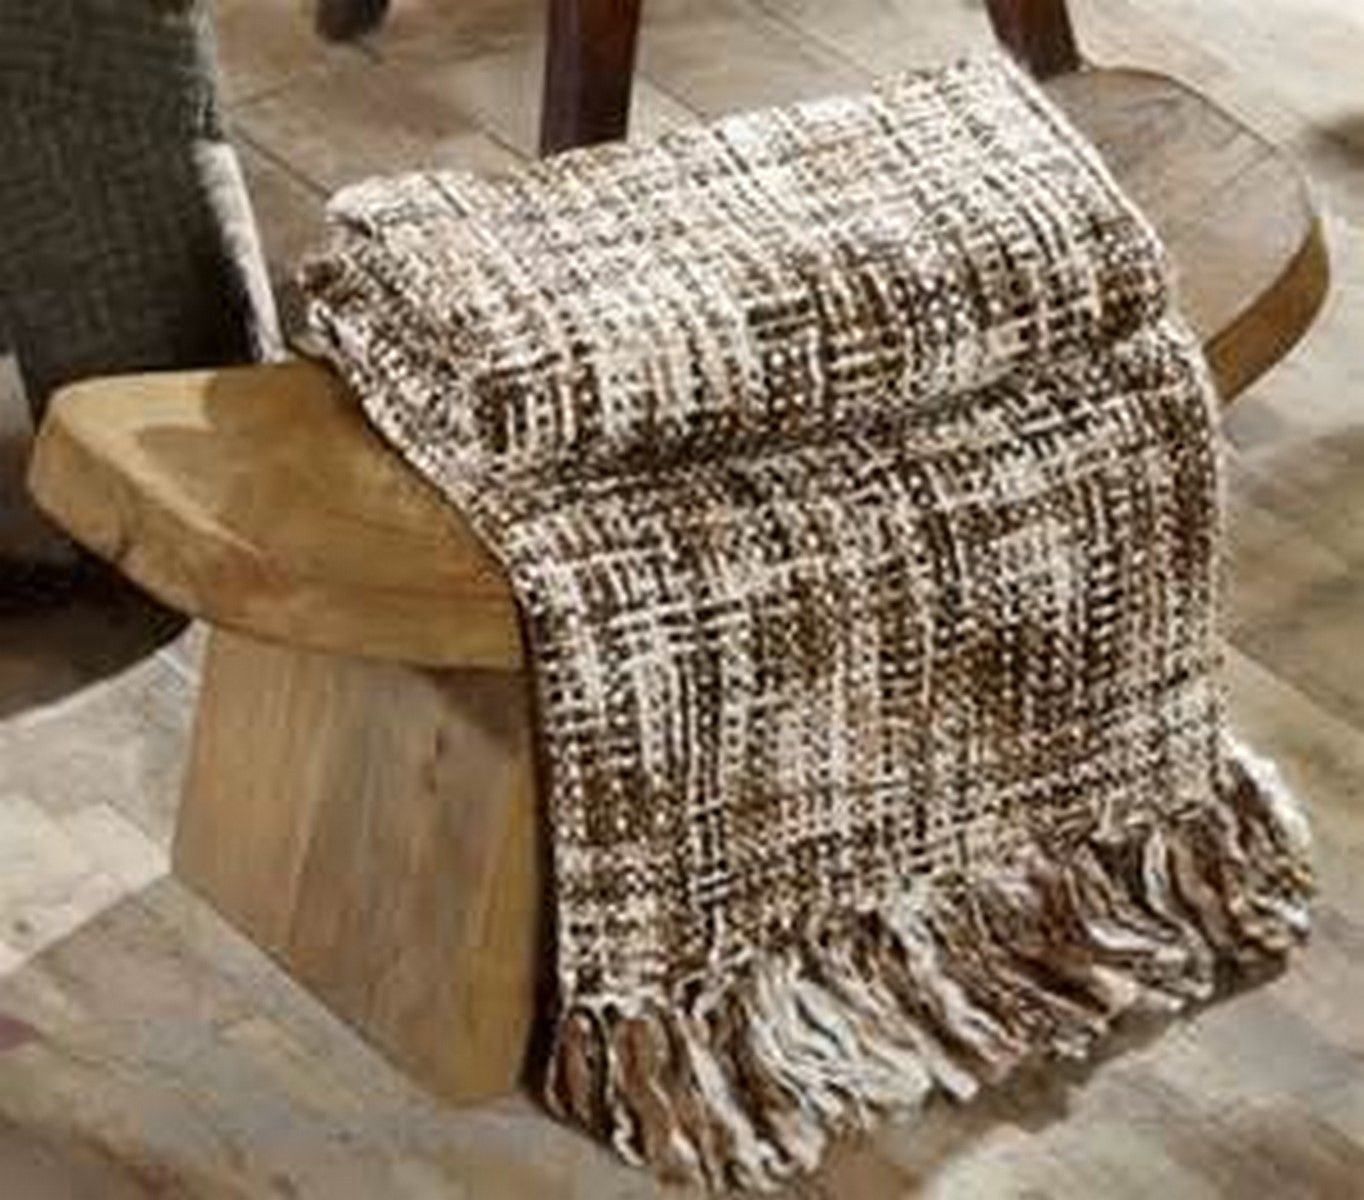 Danson Mill Woven Acrylic Throw - Brown, Tan, Natural and Creme - VHC Brands